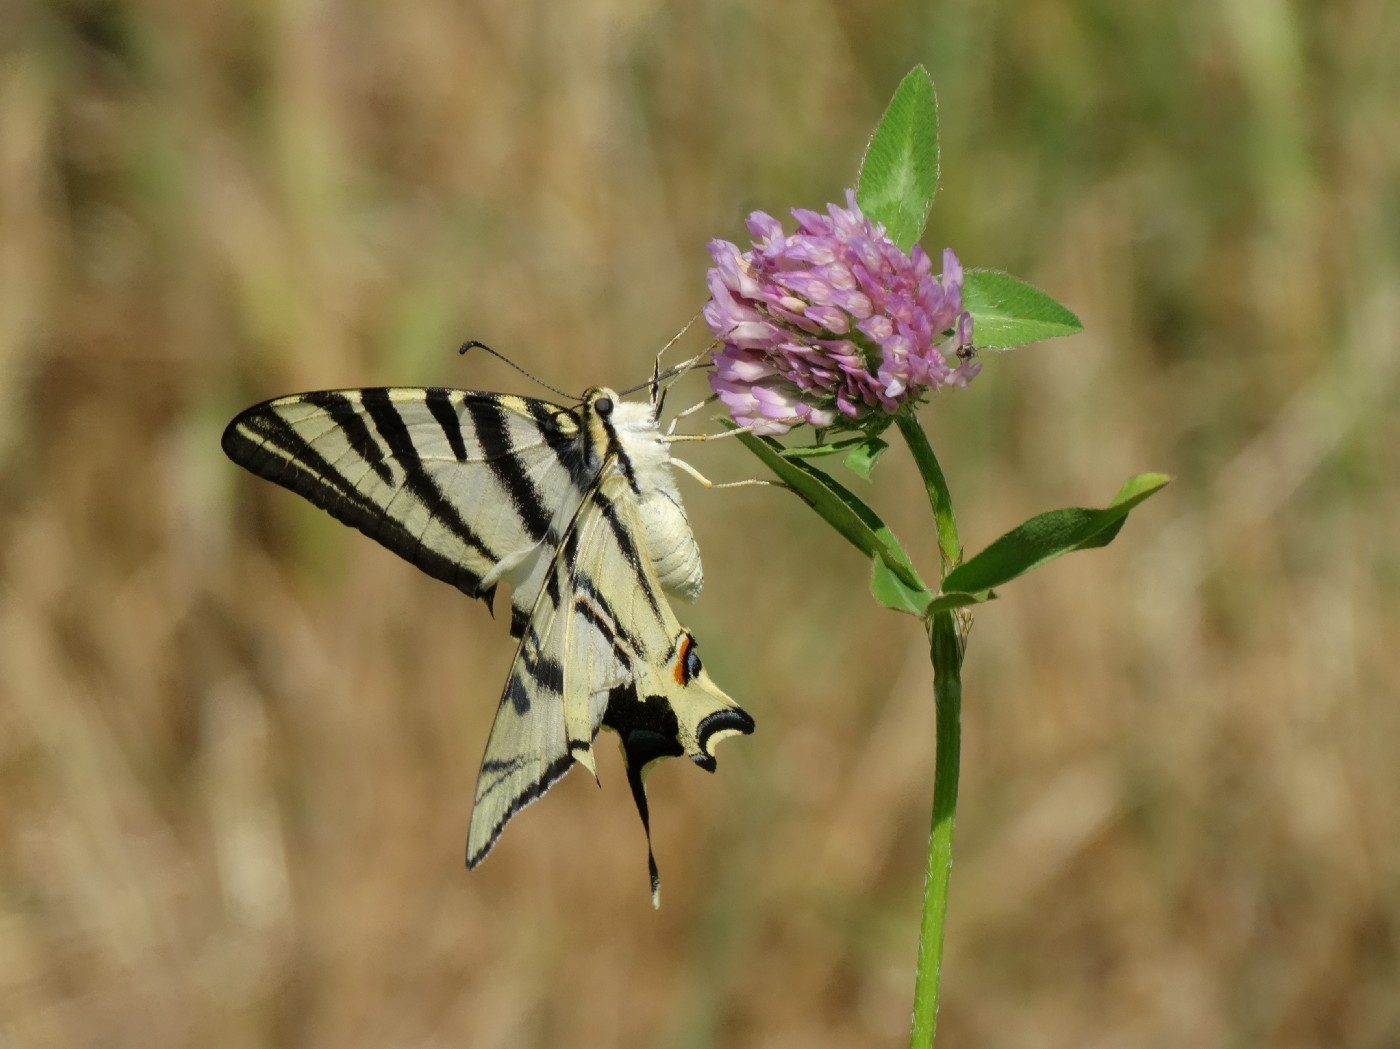 A black-and-white striped butterfly on a pink flower.